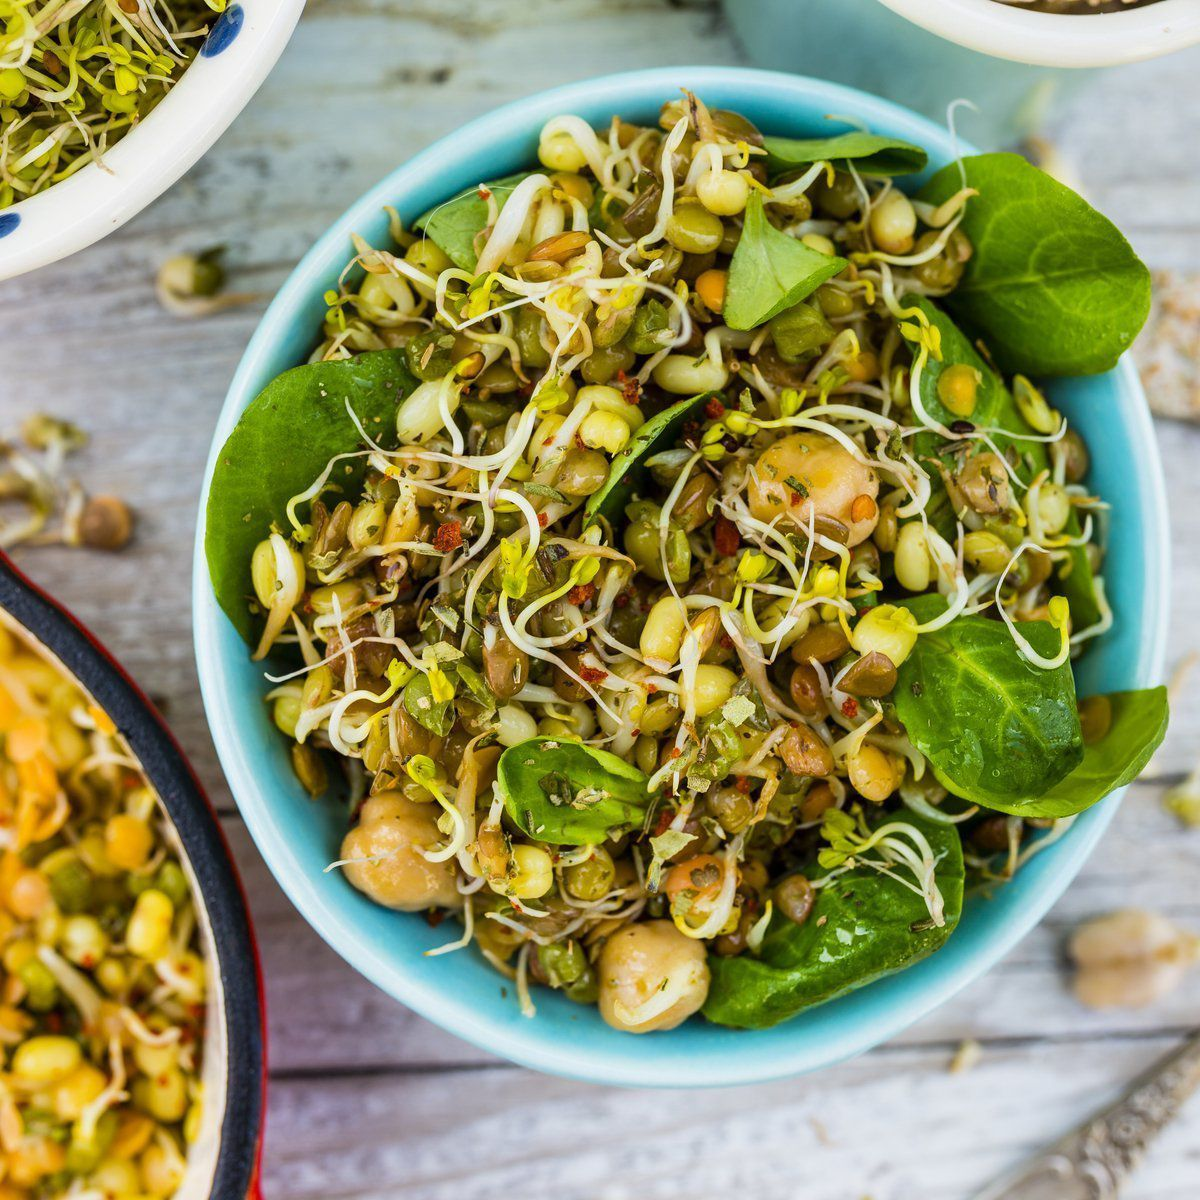 Bowl of sprouts and salad in blue bowl, white wood background